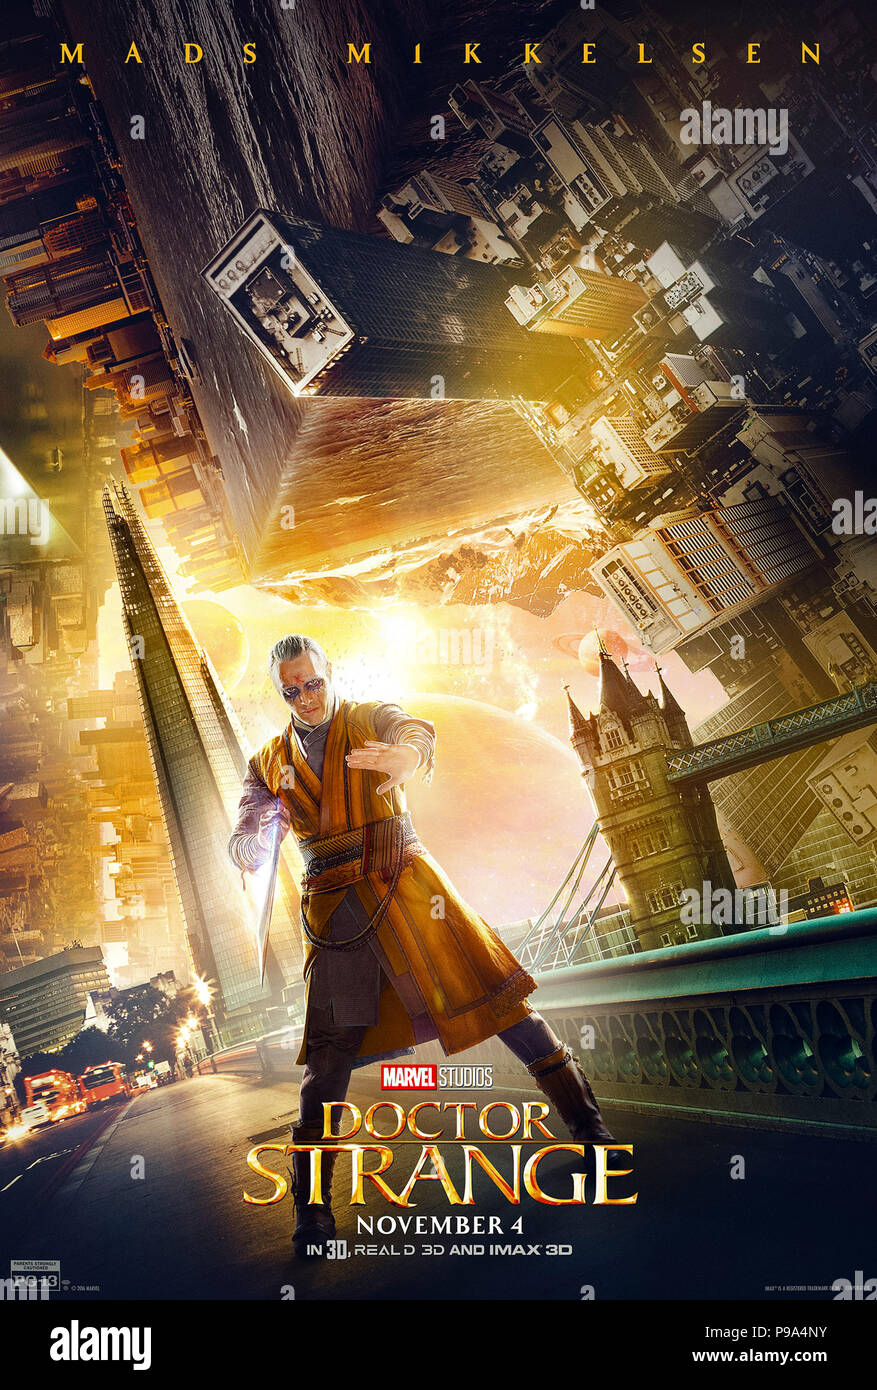 Doctor Strange 2016 Directed By Scott Derrickson Character Poster Showing Kaecilius Played By Mads Mikkelsen Stock Photo Alamy